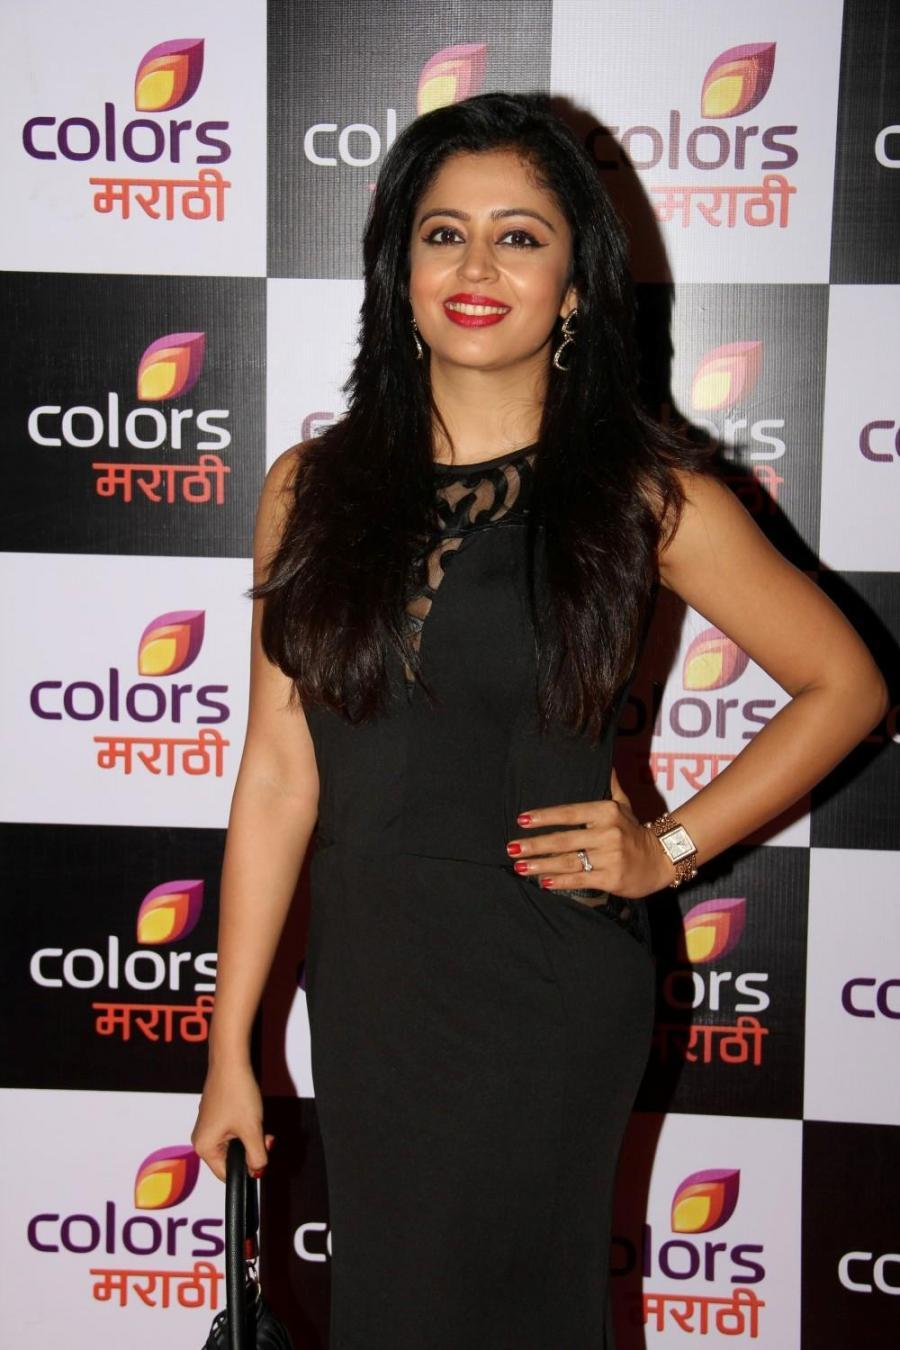 Neha-Pendse-sexy-dress Neha Pendse 15+ Picture's of Tremendous Scorching Unseen Bikini Swimsuit Pics & Wallpapers